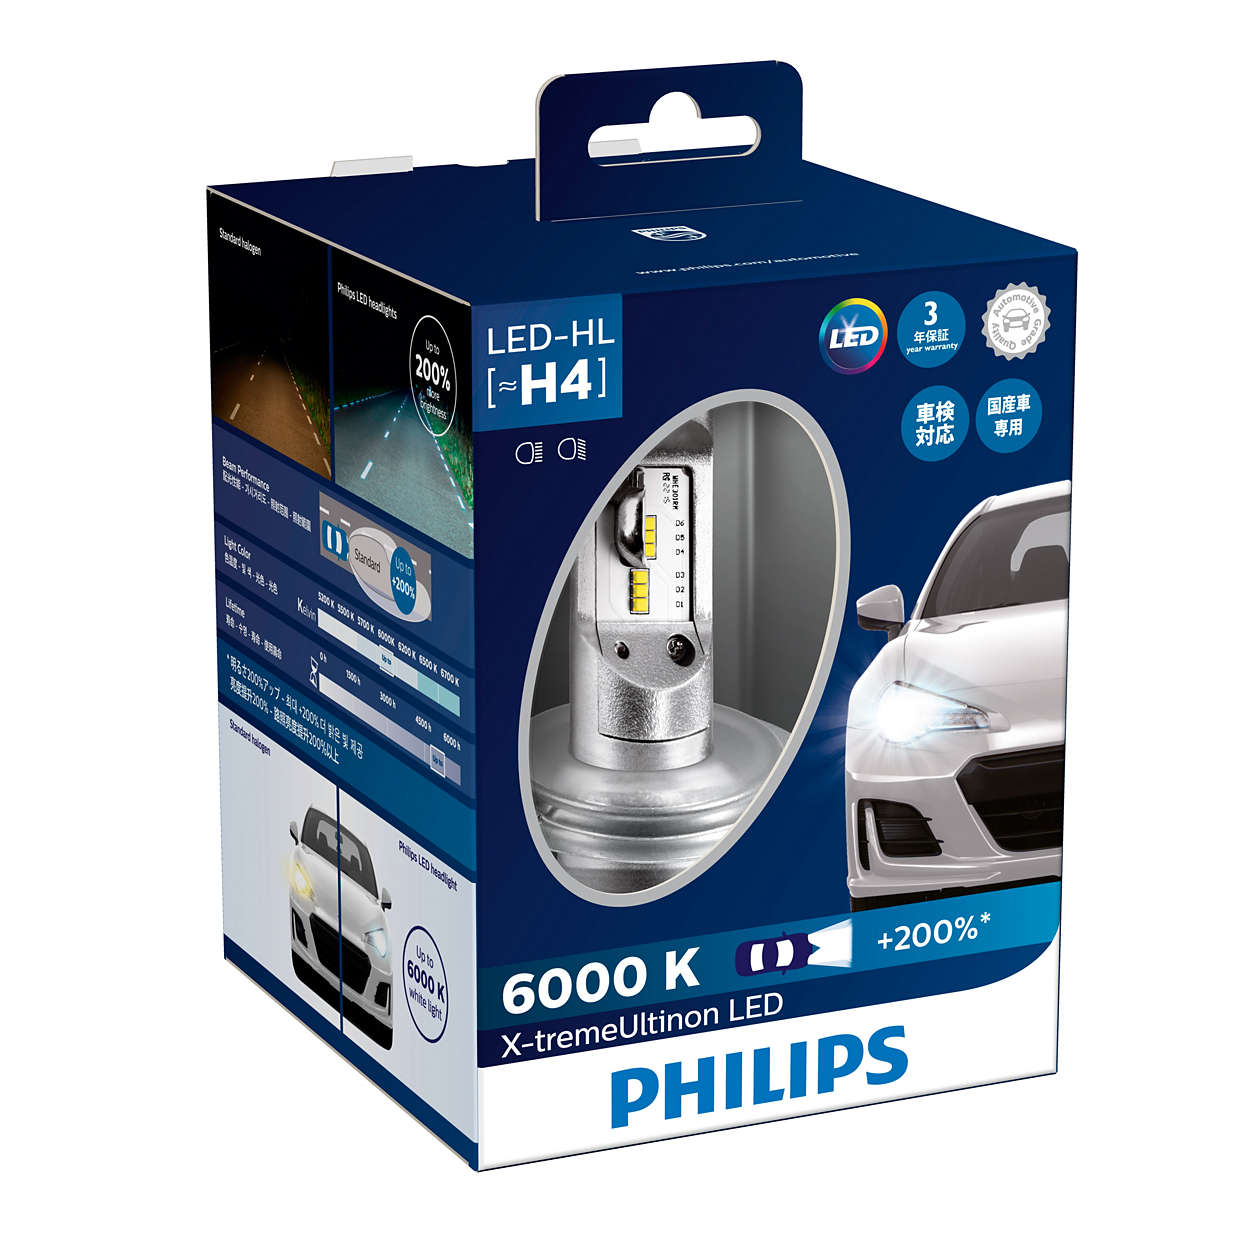 x treme ultinon led led car lamp 12953bwx2 philips. Black Bedroom Furniture Sets. Home Design Ideas